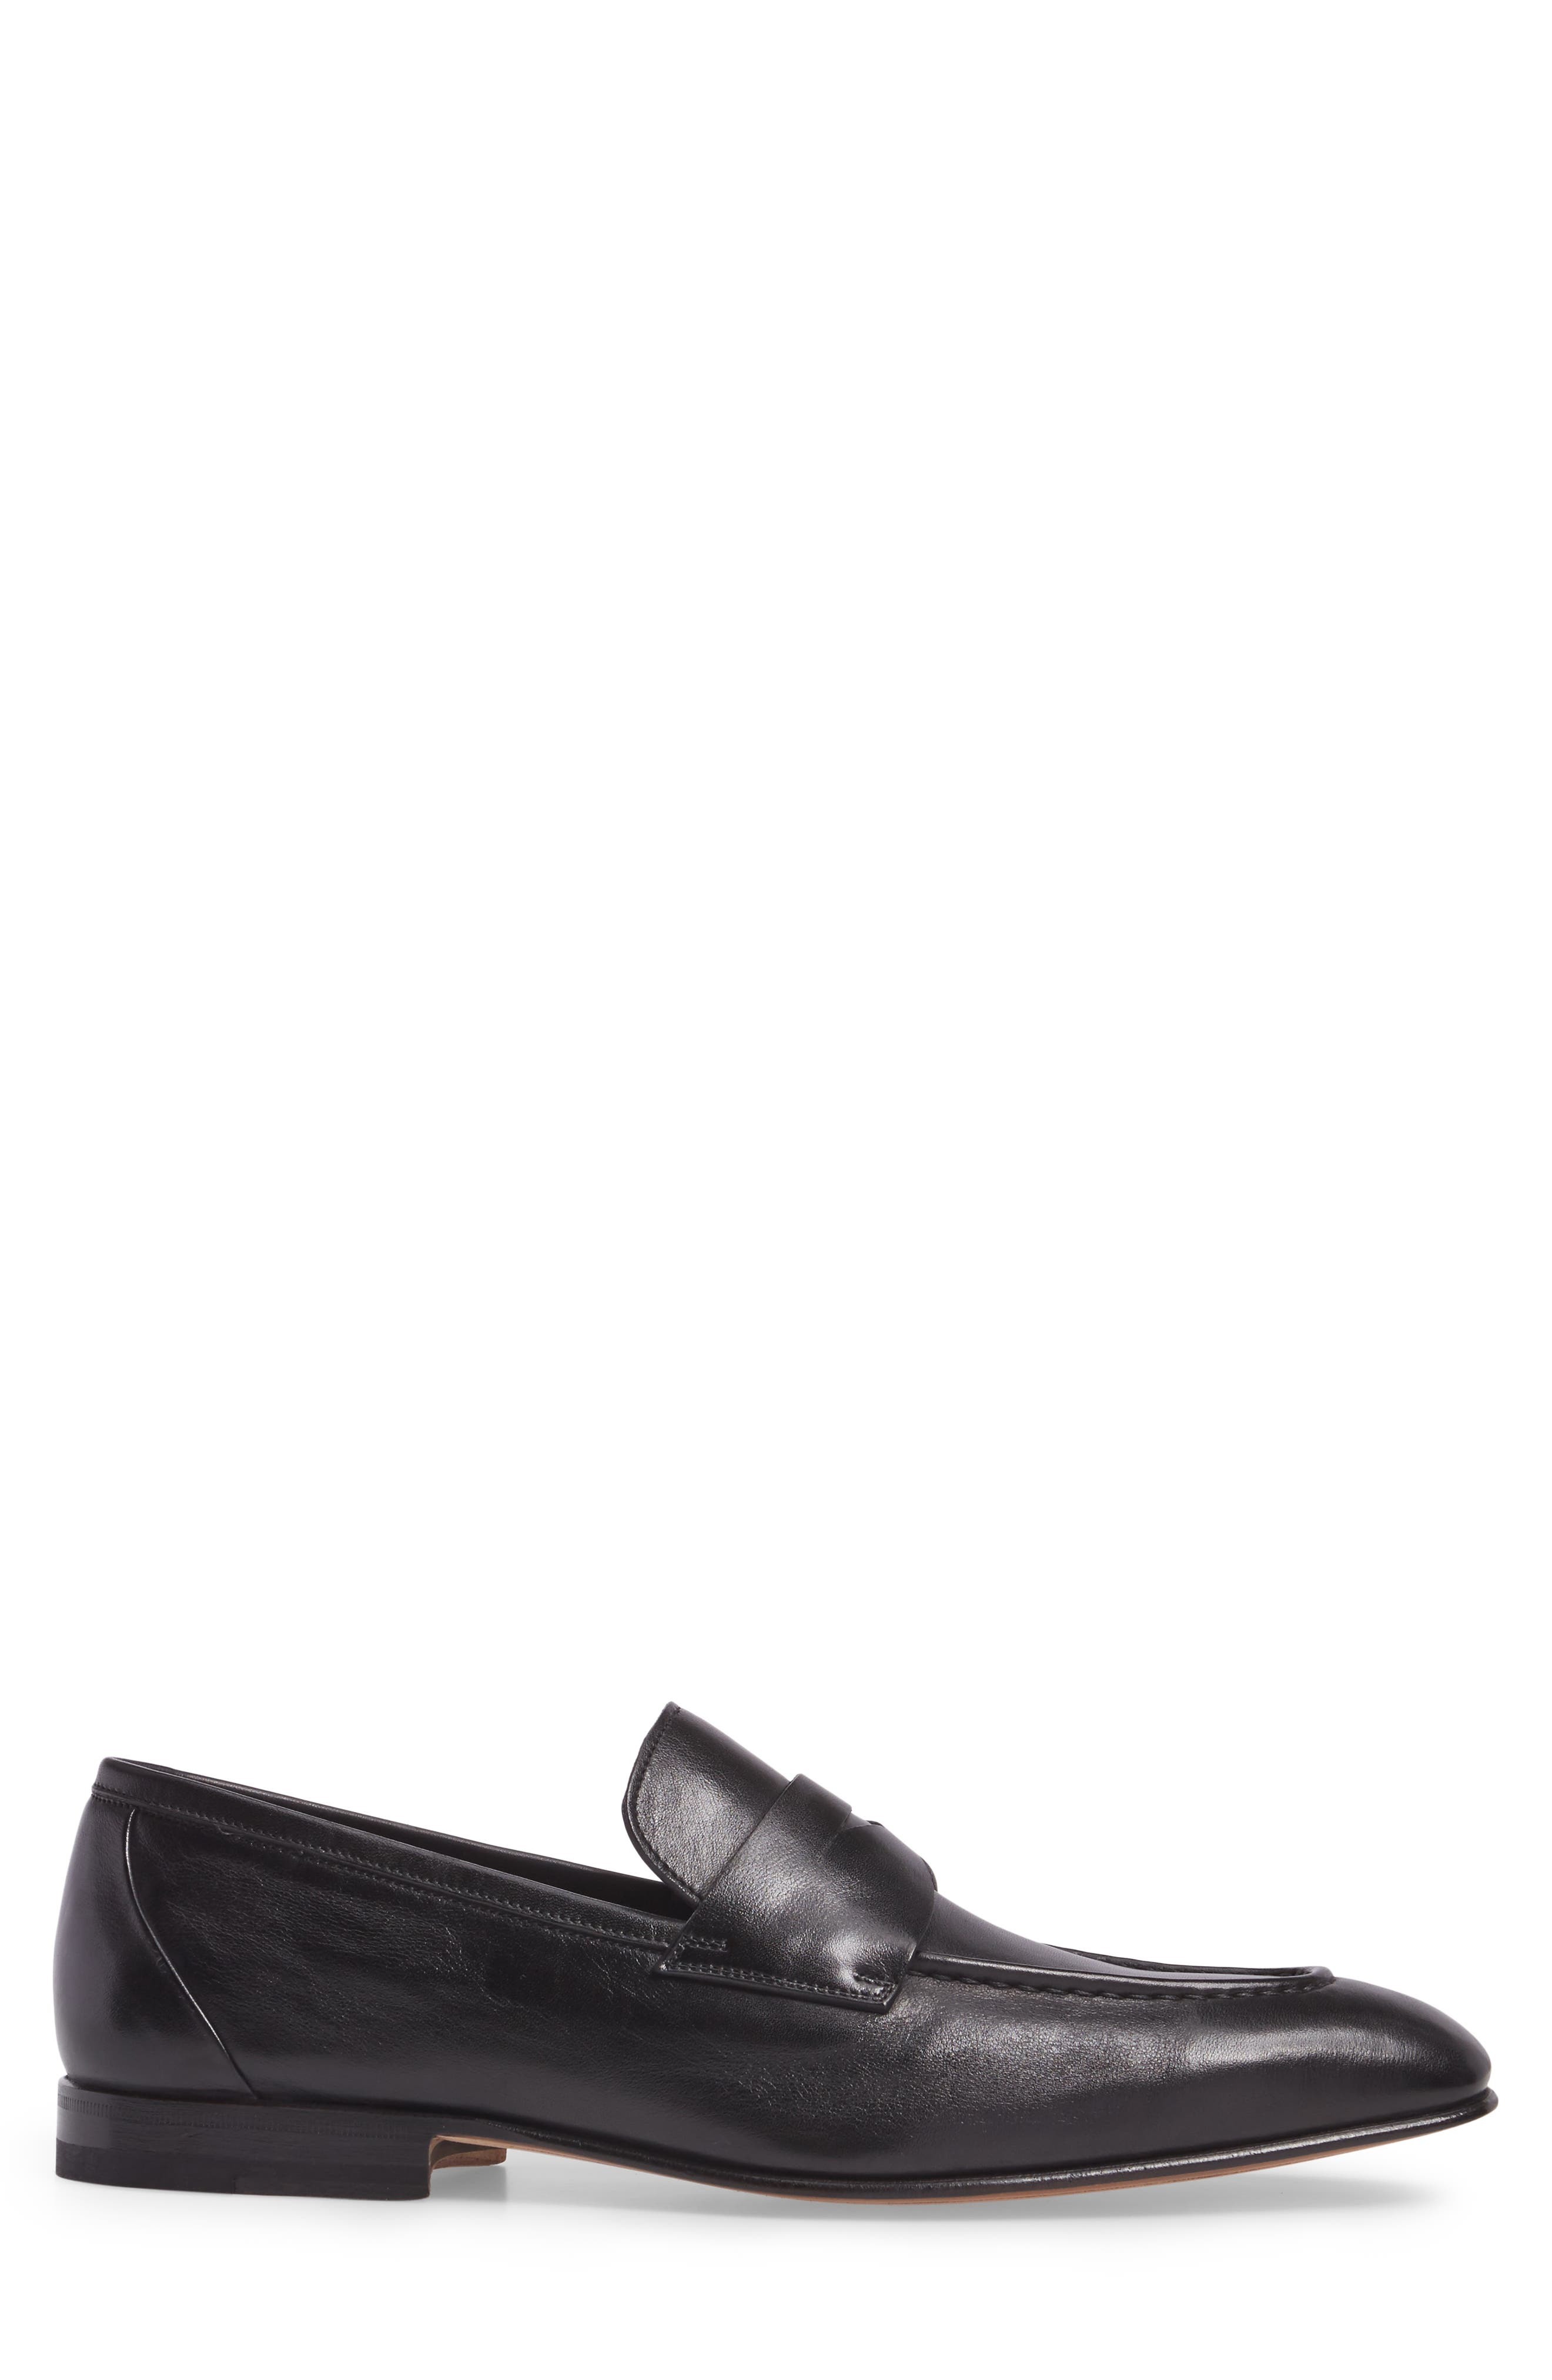 Gannon Penny Loafer,                             Alternate thumbnail 3, color,                             BLACK